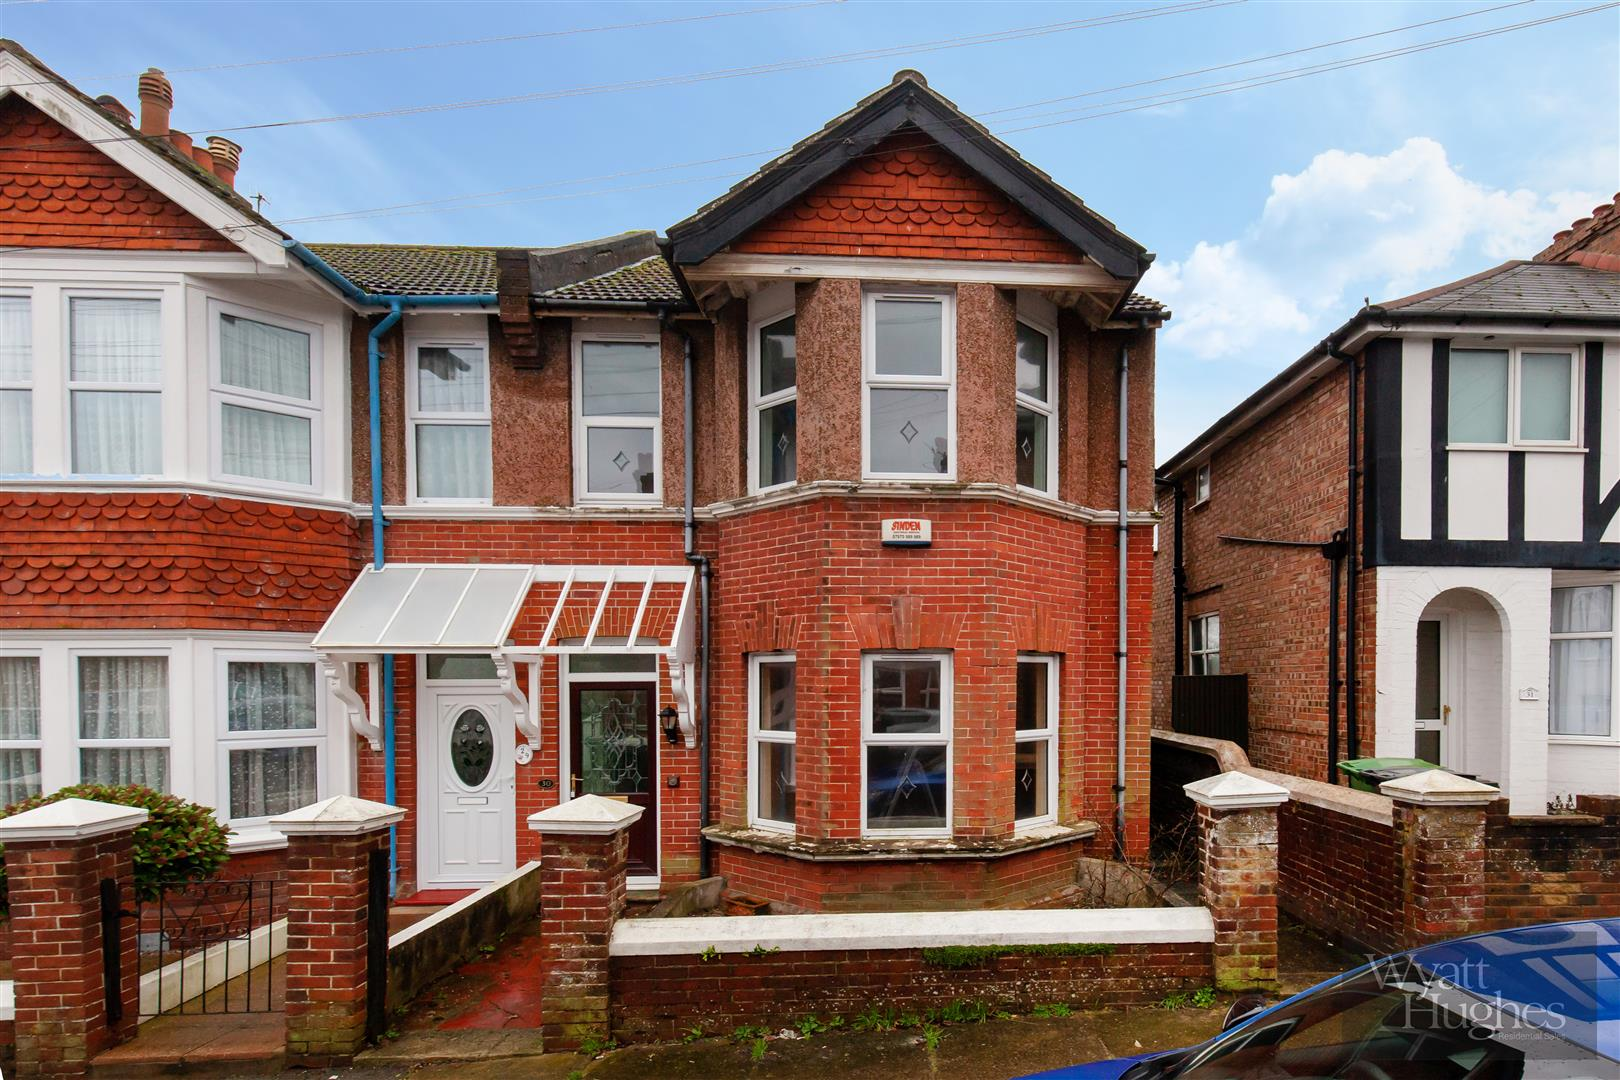 3 bed end-of-terrace-house for sale in Burry Road, St. Leonards-On-Sea - Property Image 1